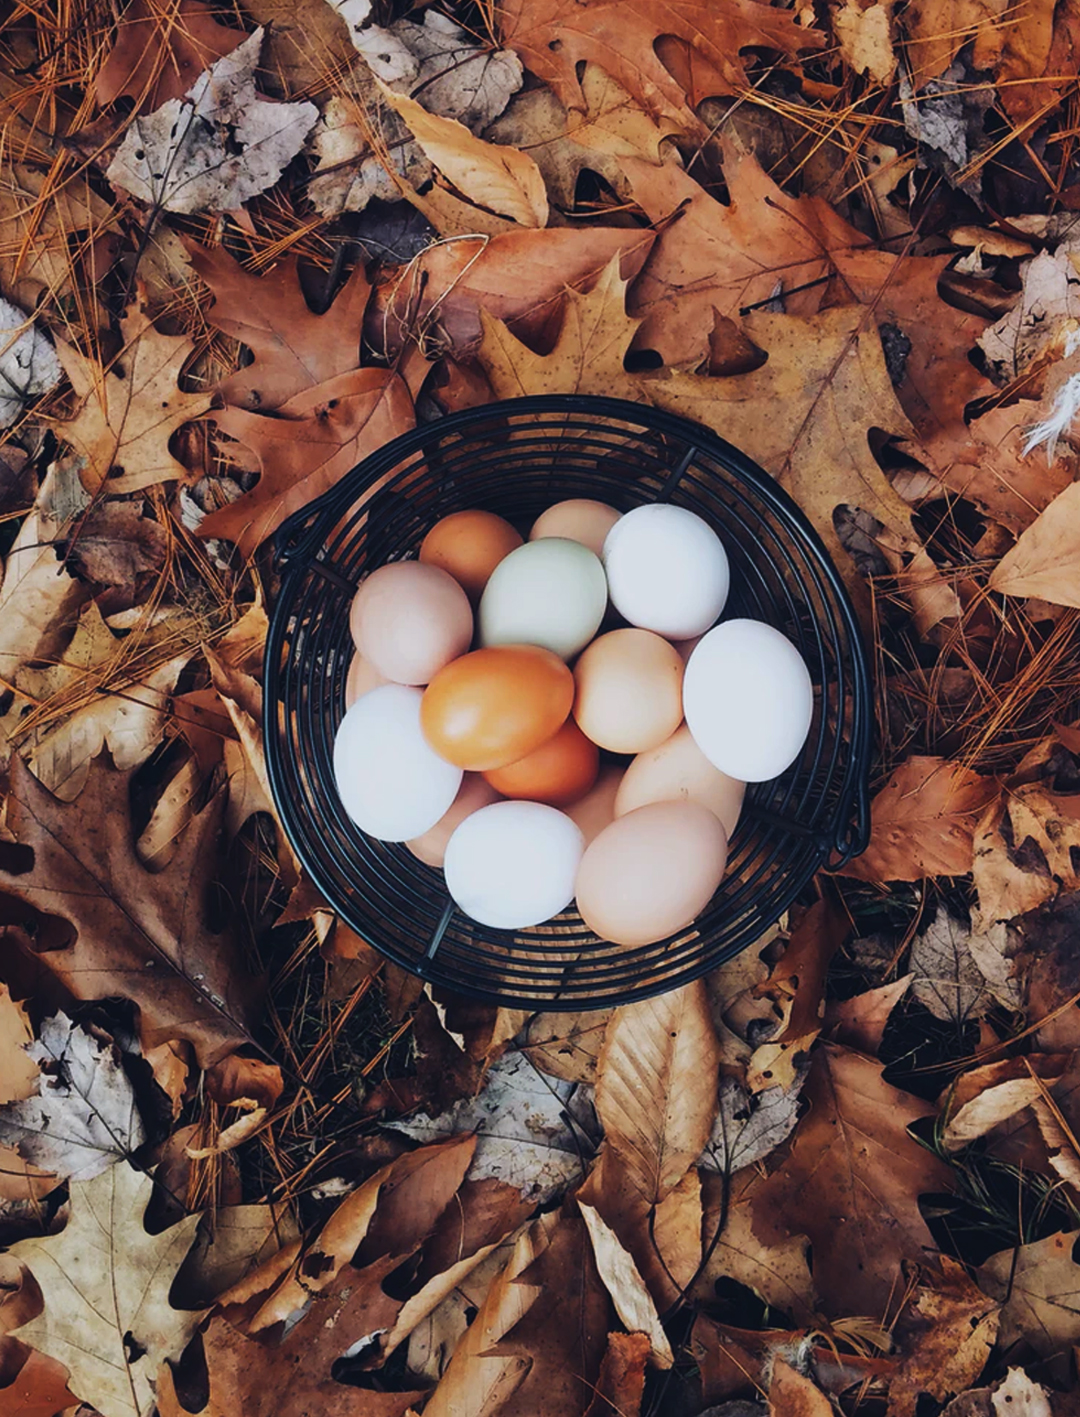 eggs in basket on pile of autumn leaves